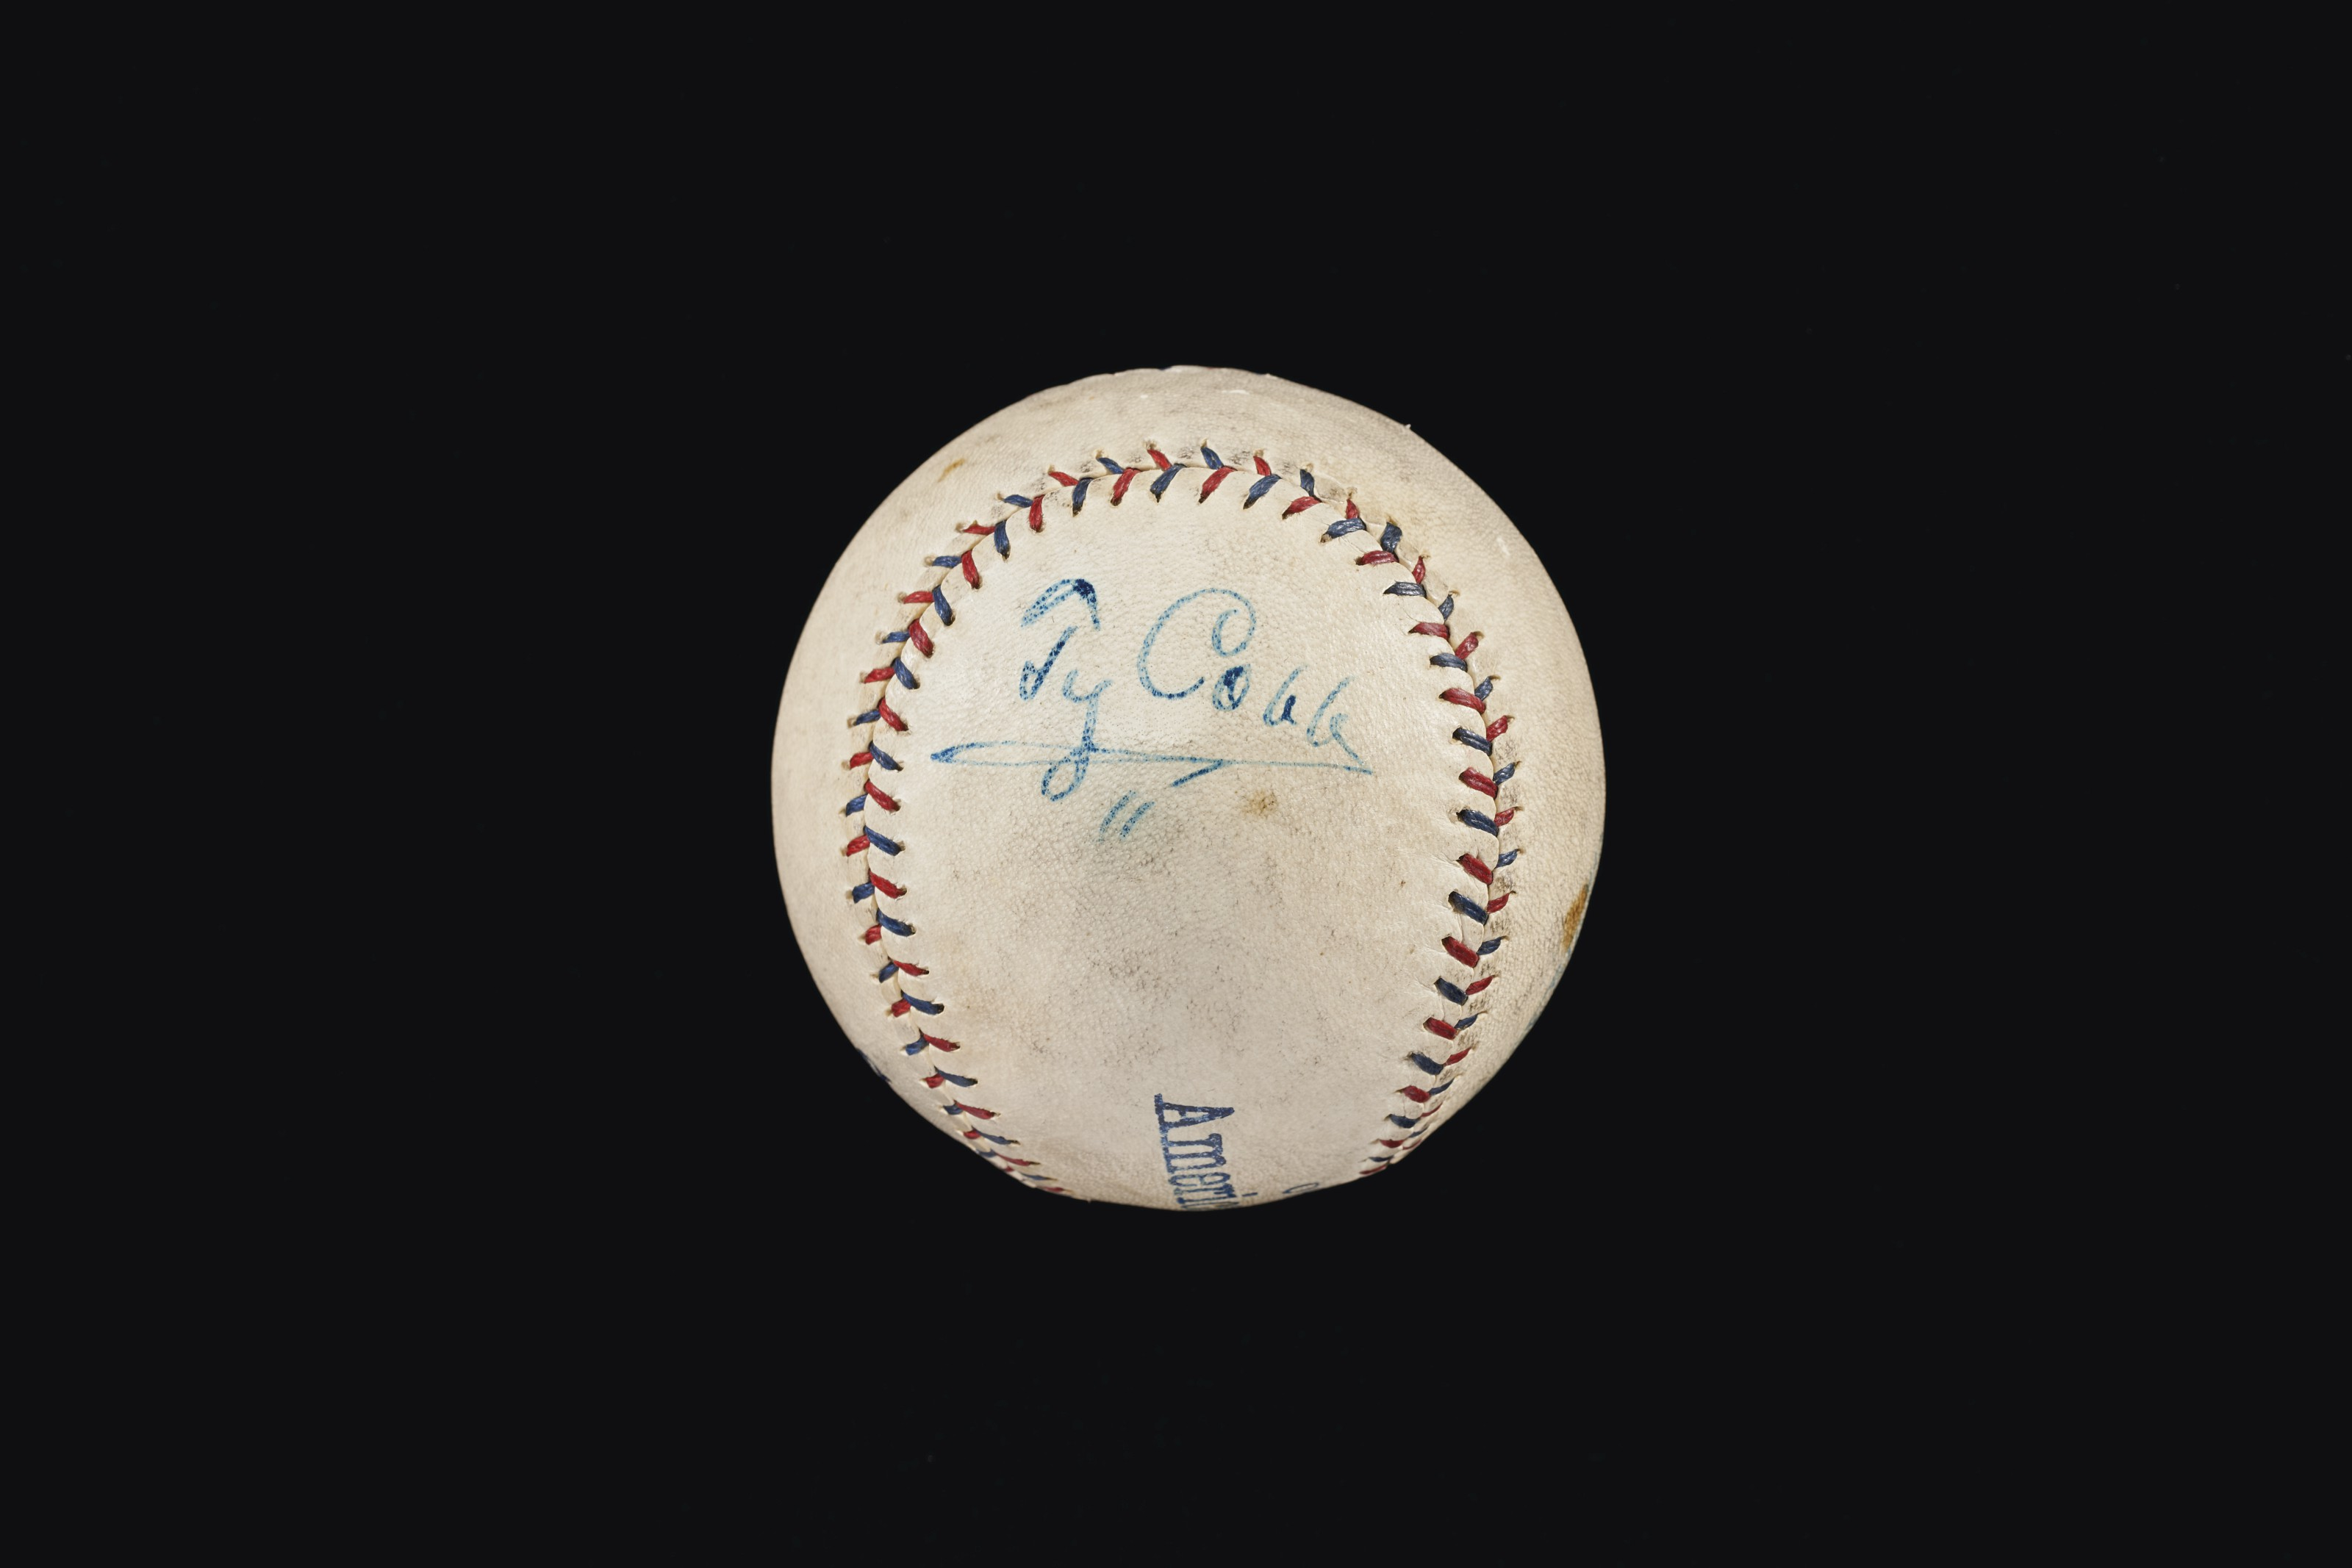 Ty Cobb Single Signed Baseball c.1920s: Scarce Playing Career Example (PSA/DNA 6.5)